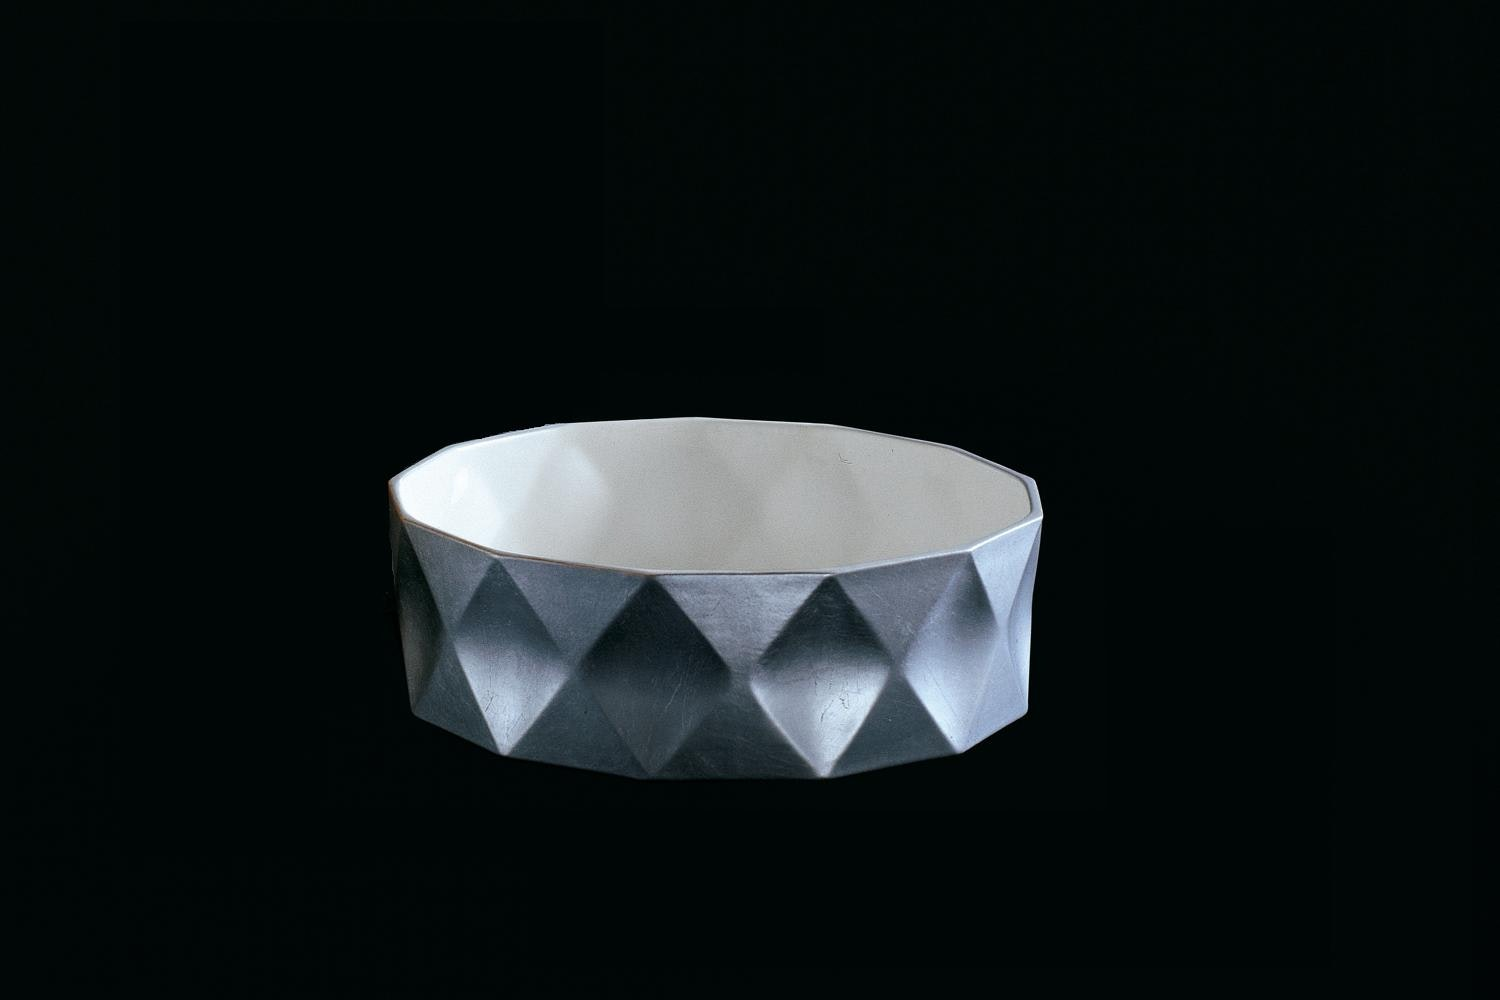 Joker Bowl in Gold or Silver by Nicole Aebischer for B&B Italia